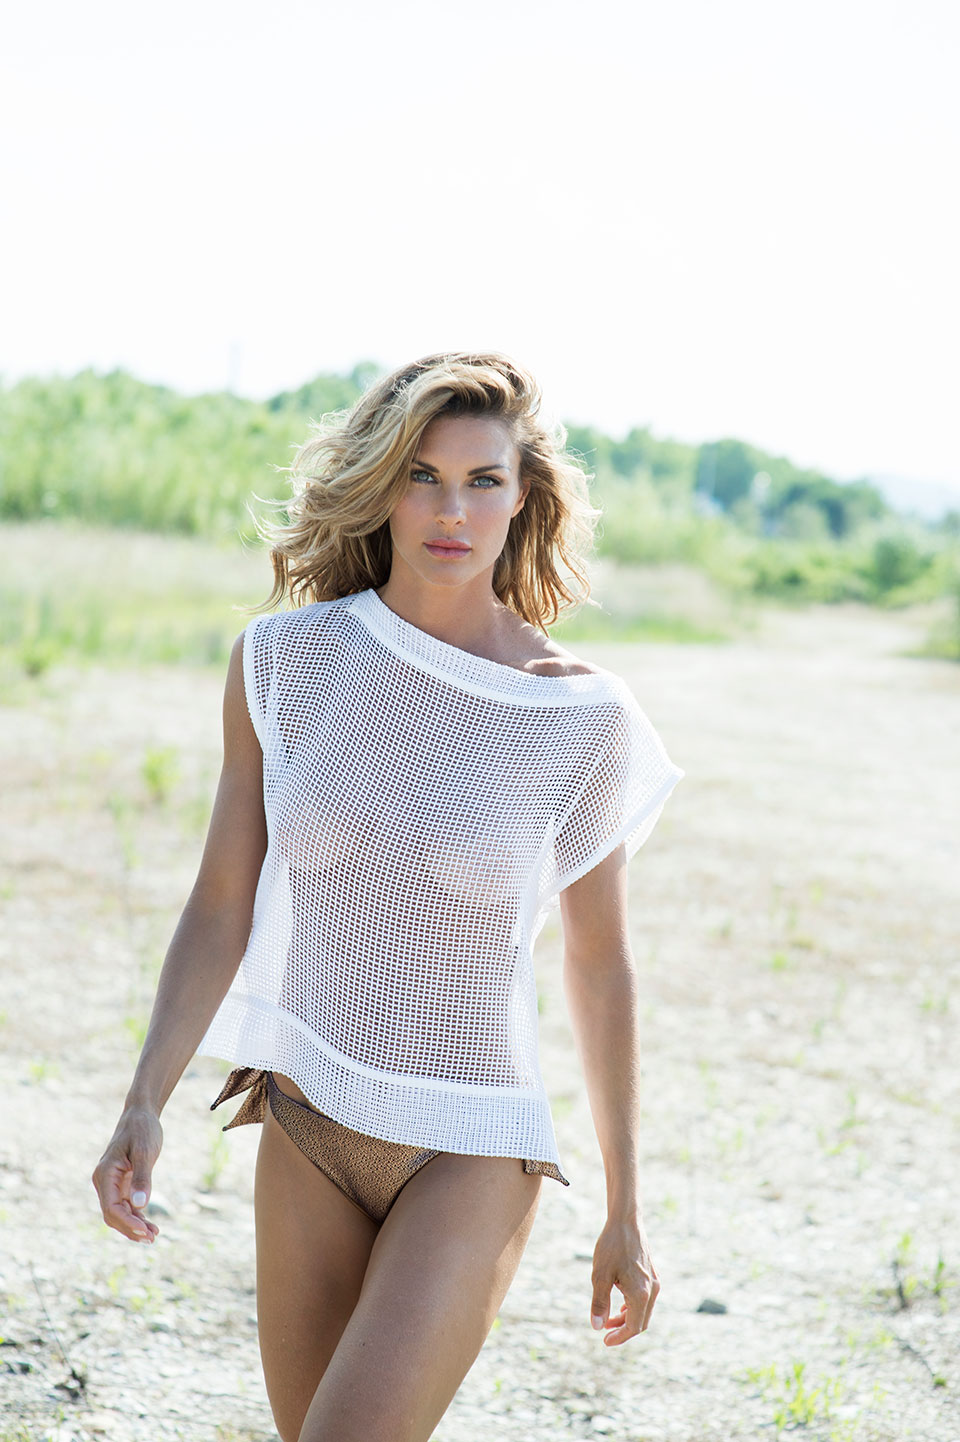 Martina Colombari en t-shirt transparent